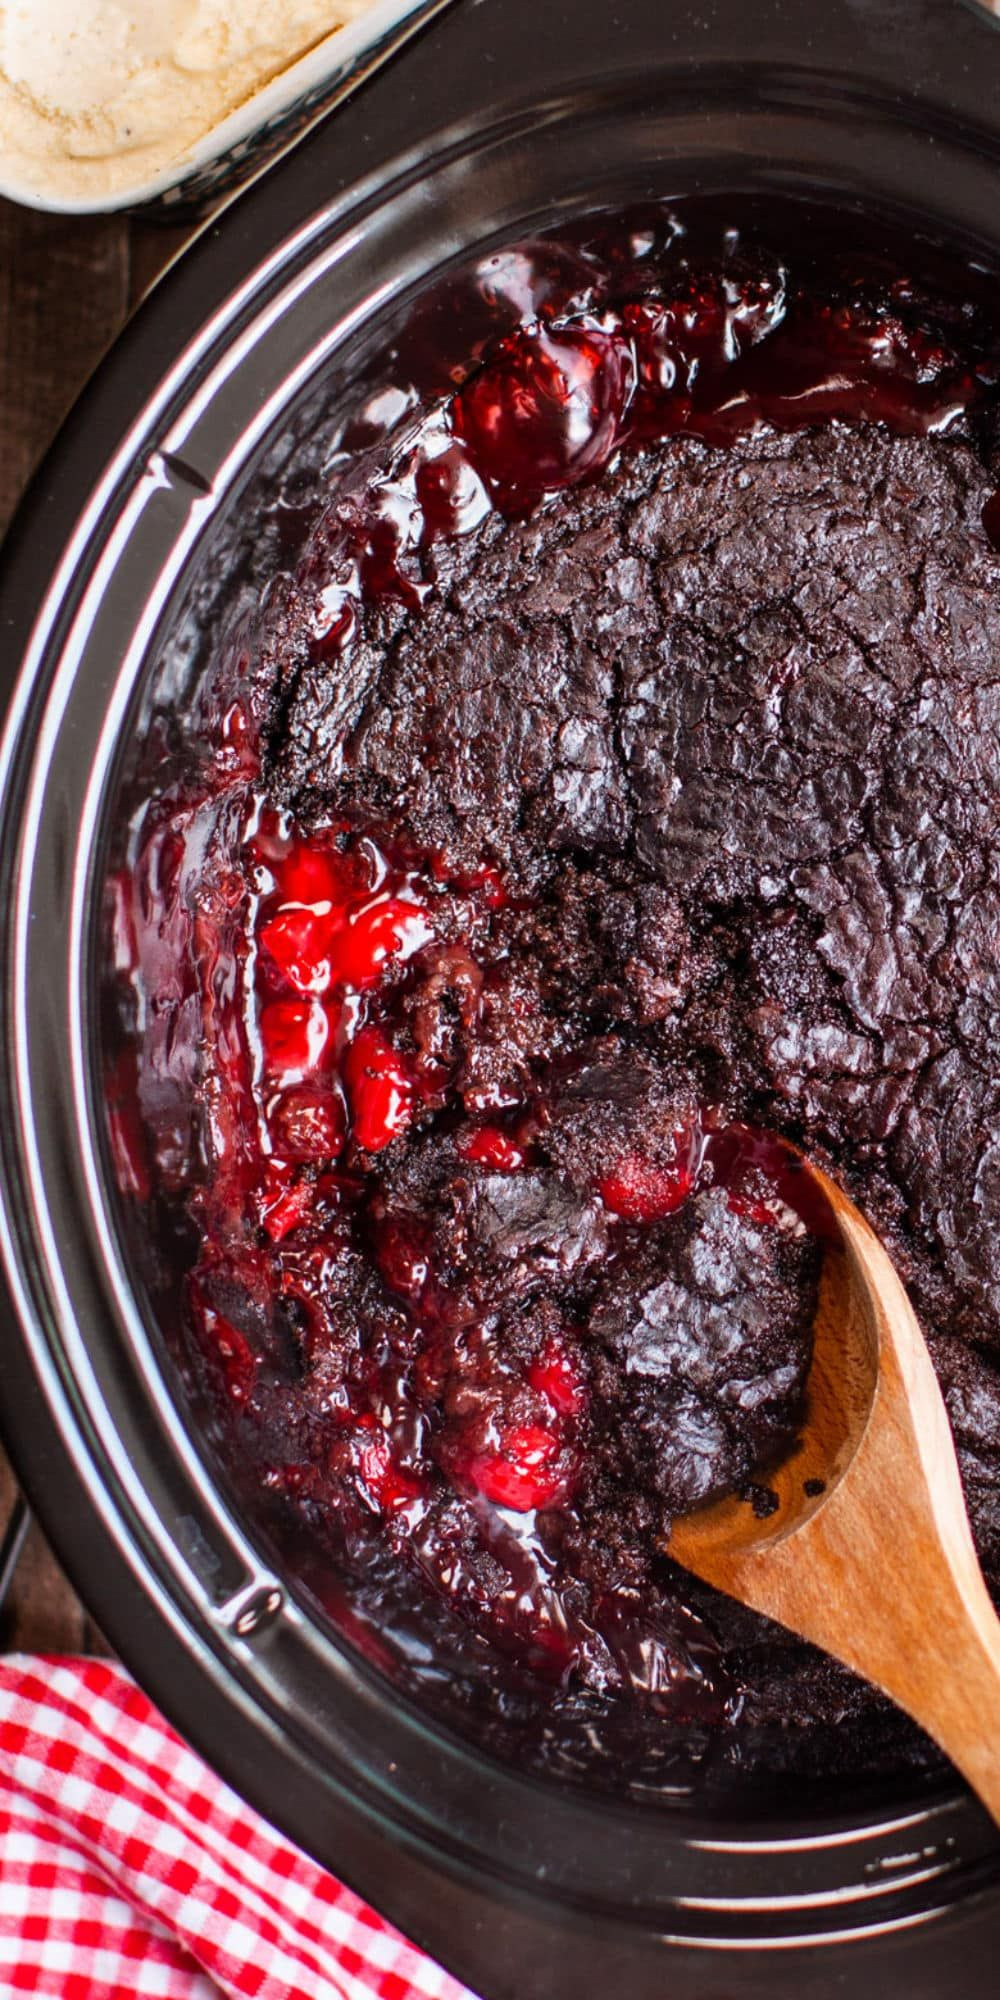 Slow Cooker Cake Recipes With Yellow Cake Mix  Slow Cooker Chocolate Cherry Dump Cake